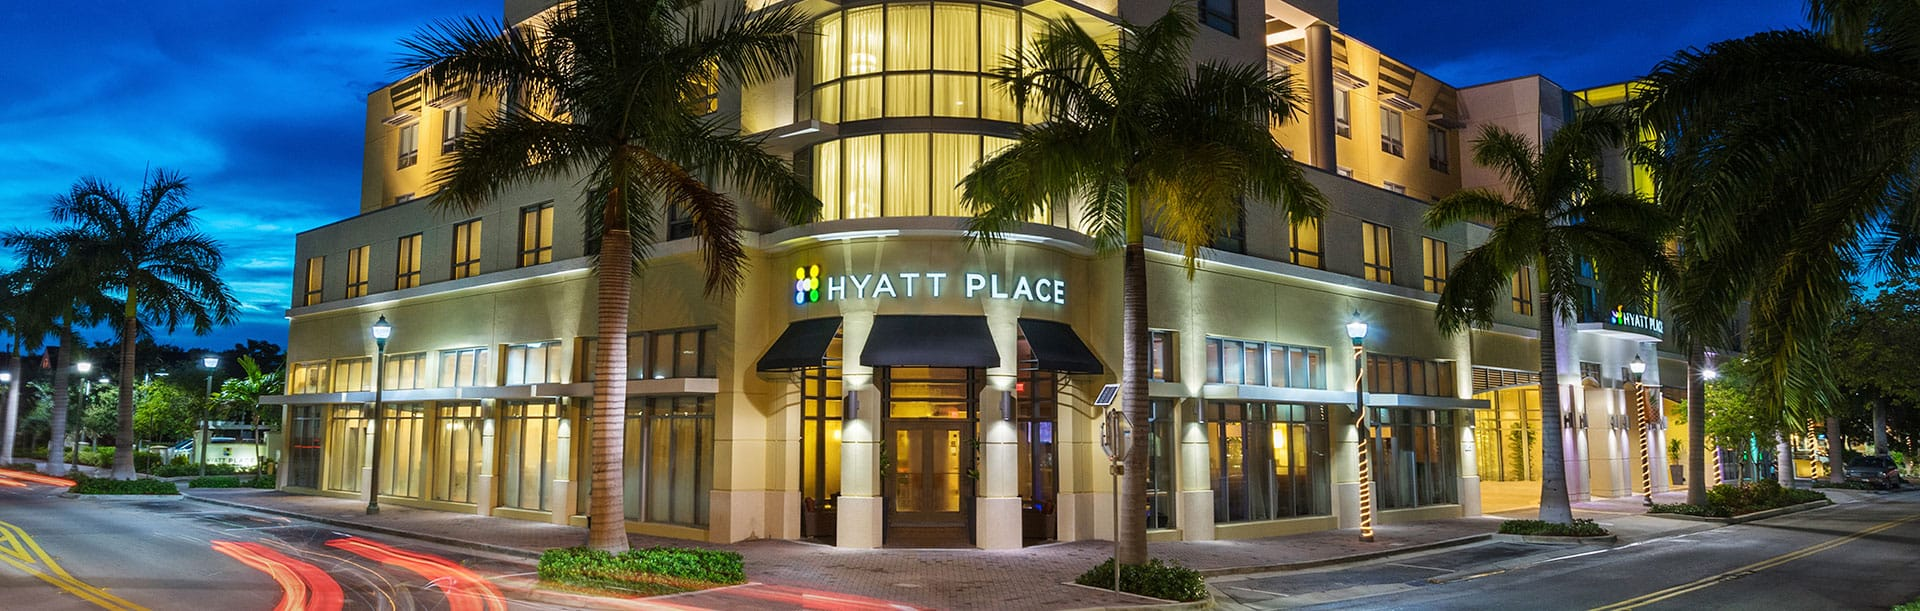 Hyatt Place, Boca Raton Downtown, A Kolter Group Property